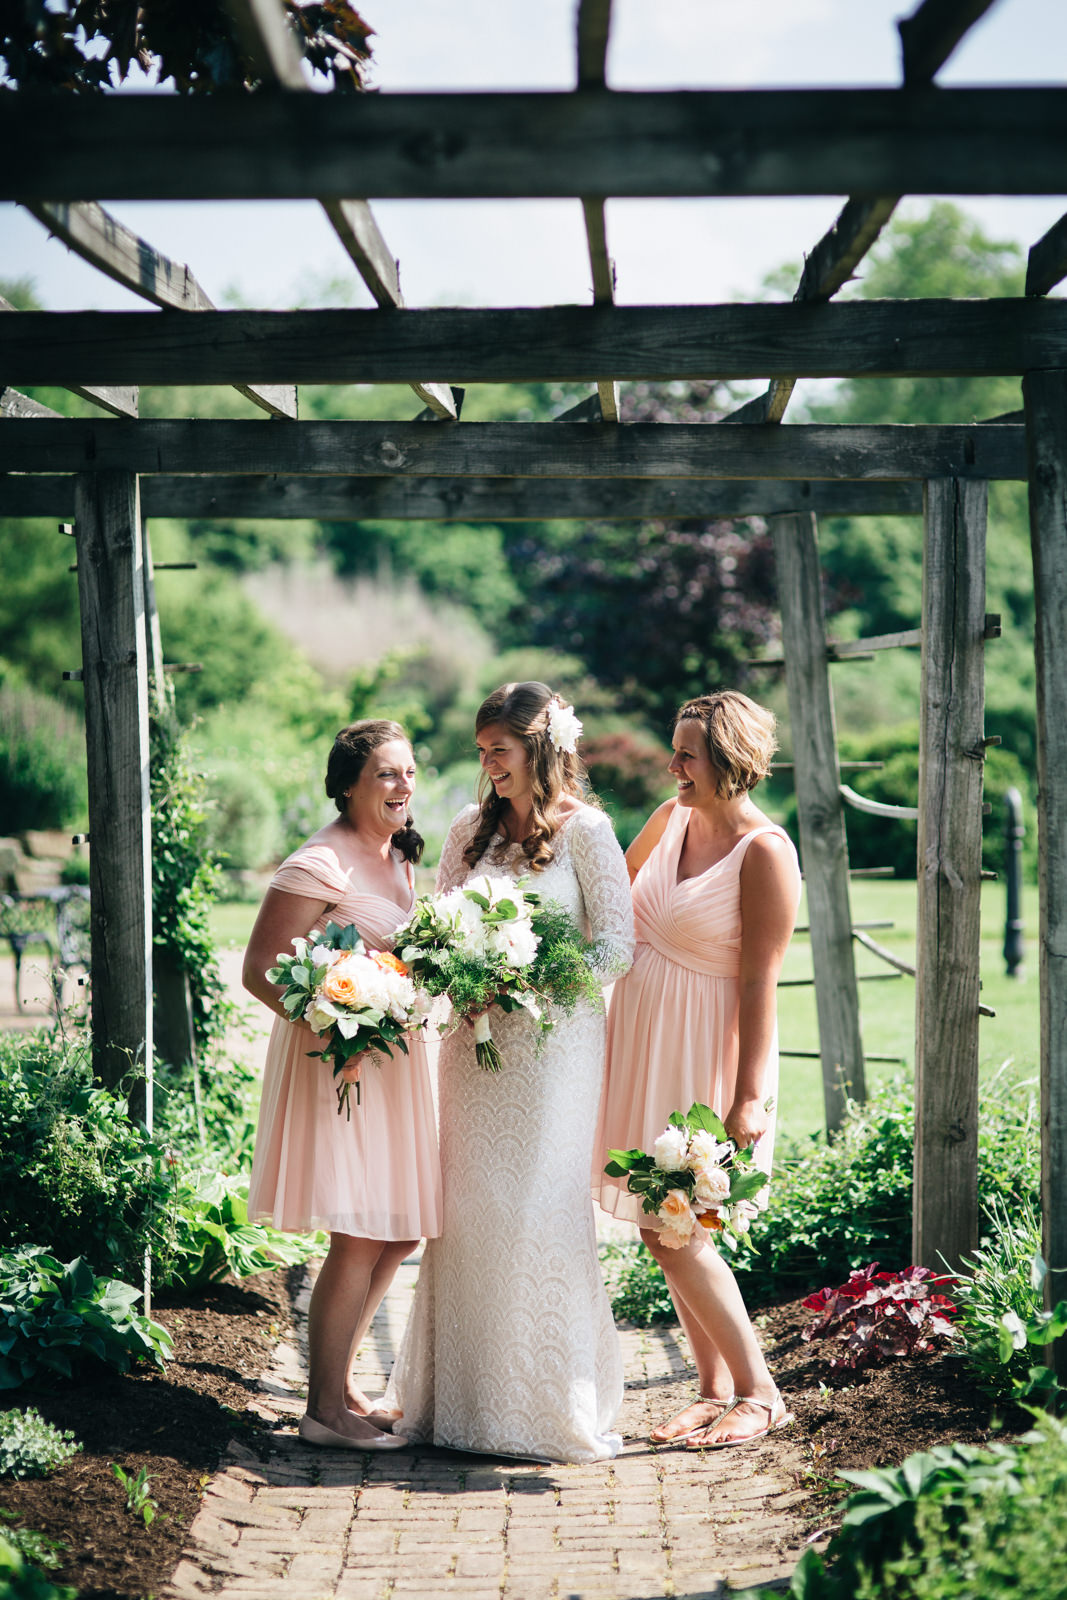 Bride and her bridesmaid smile during portrait in garden at Quailcrest Farm.